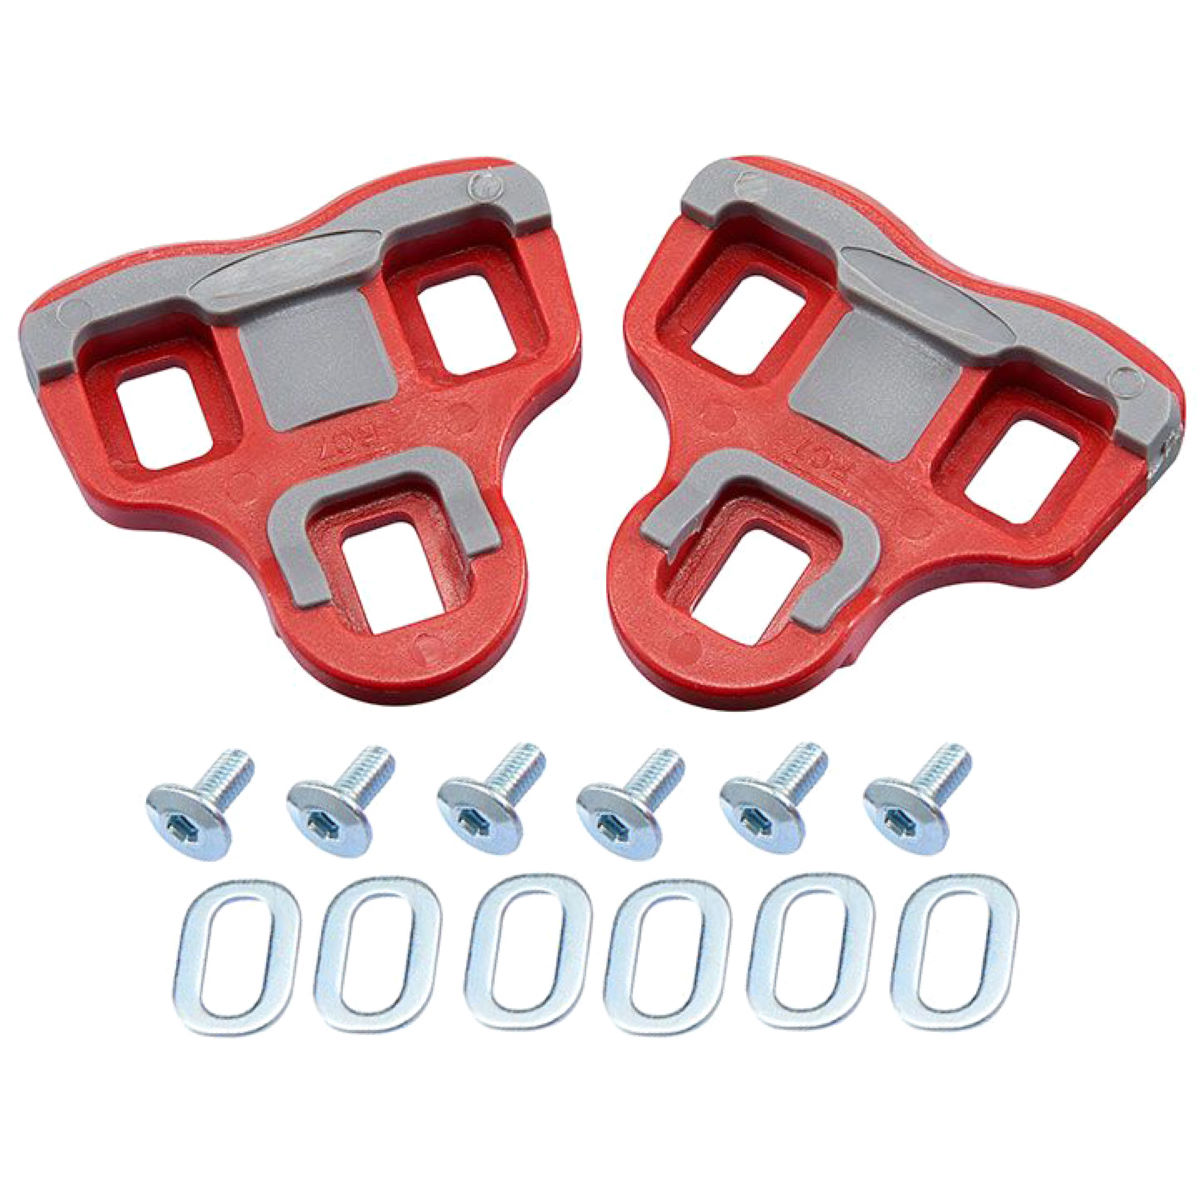 Ritchey Pedal Cleats for WCS Echelon - Calas